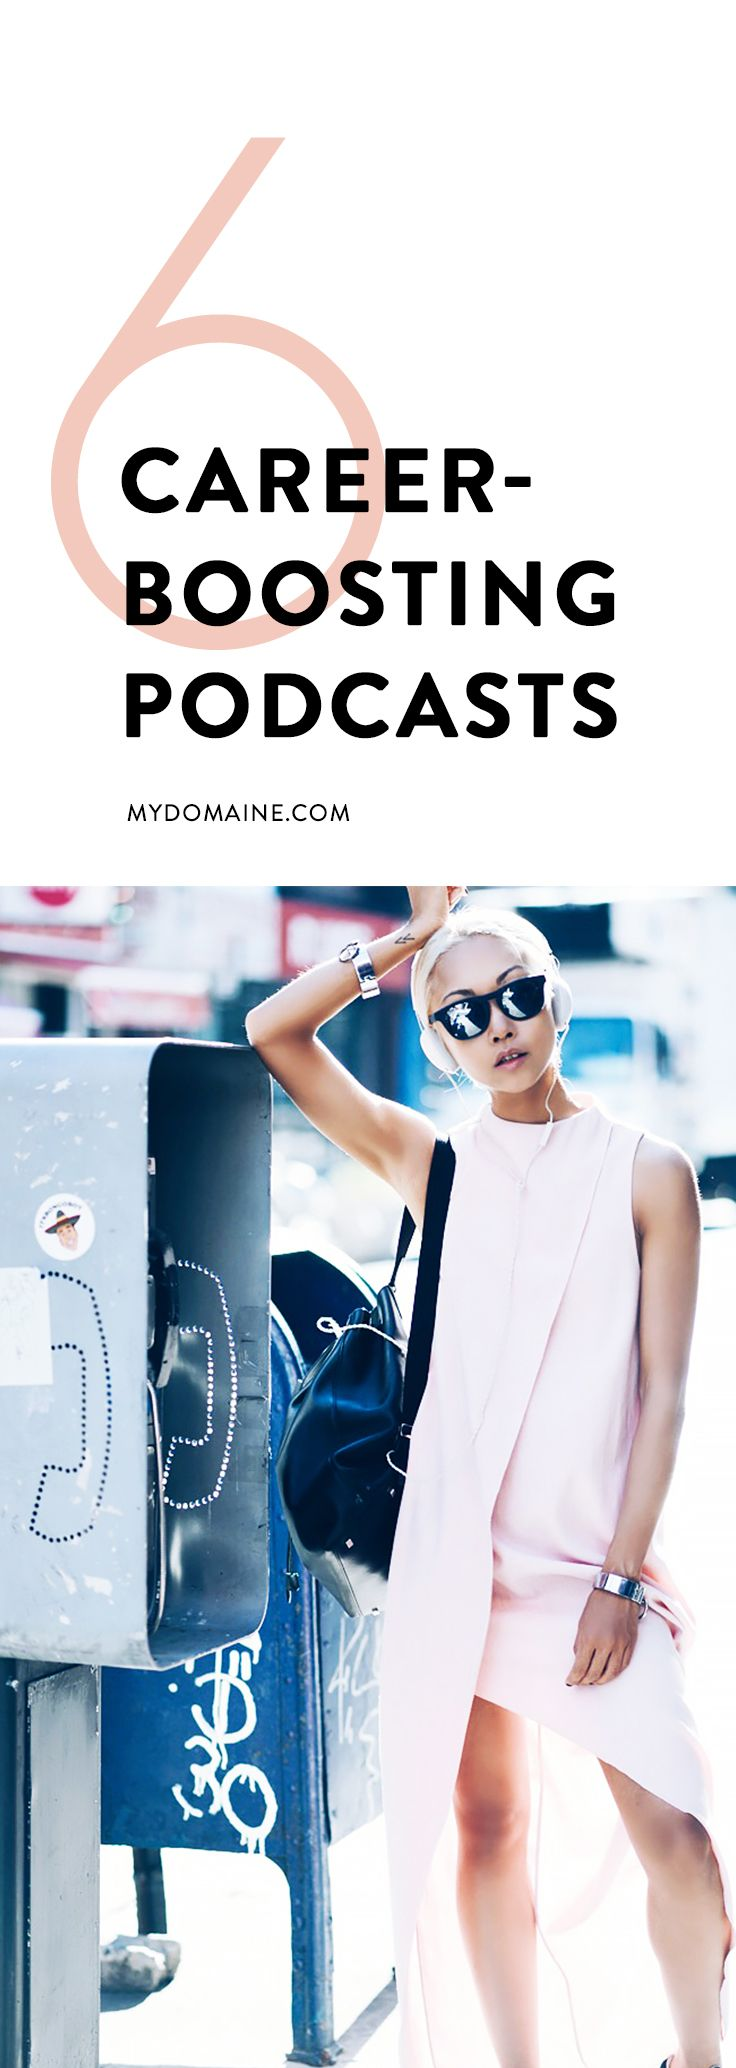 listen up the best podcasts to help you win at life we podcasts that will boost your career want to travel the world and get your dream job